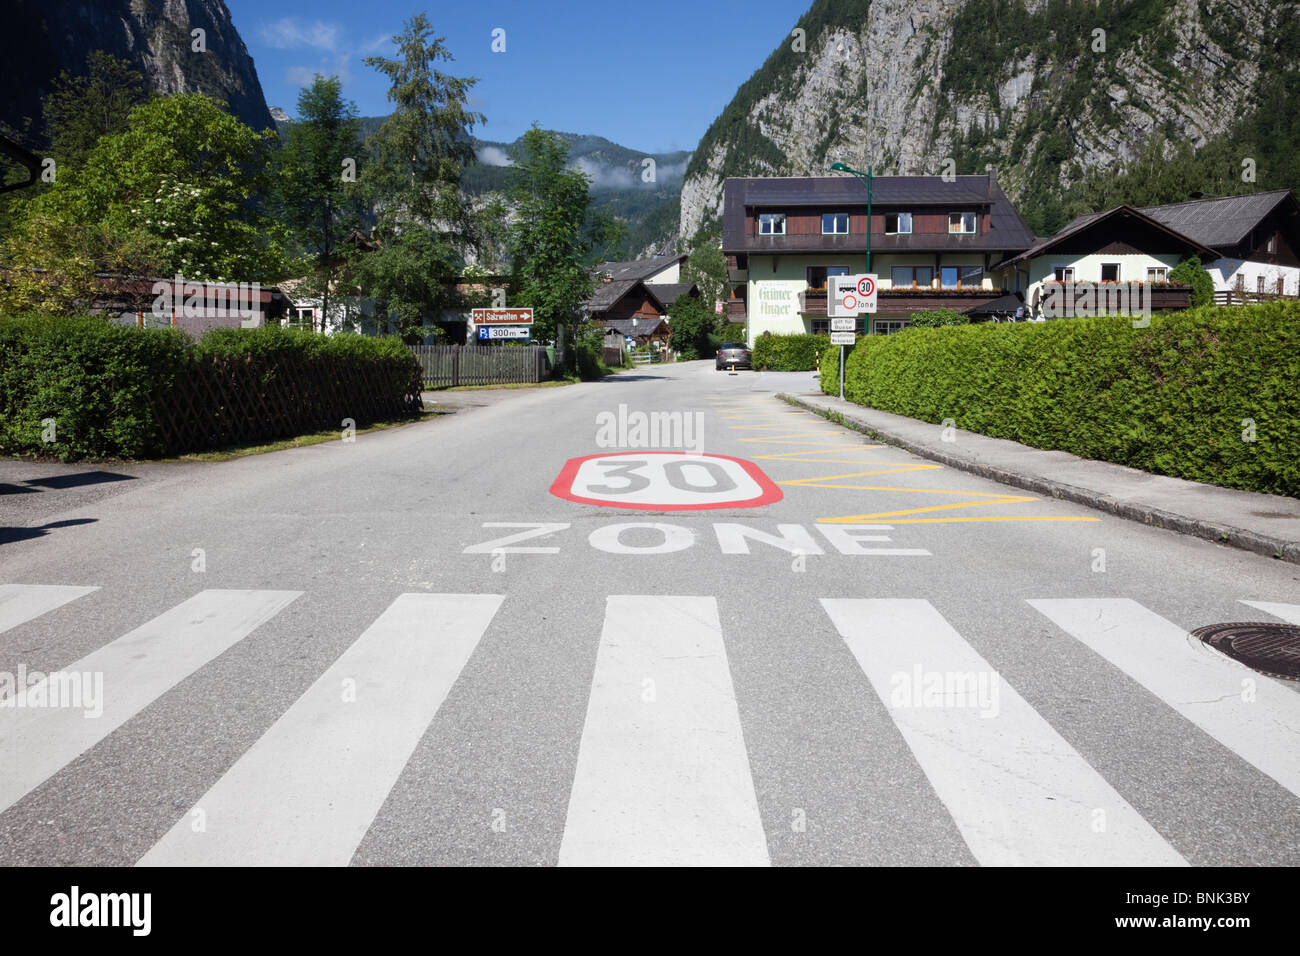 Austria, Europe. Pedestrian crossing and thirty kilometers an hour speed restriction zone sign on road - Stock Image